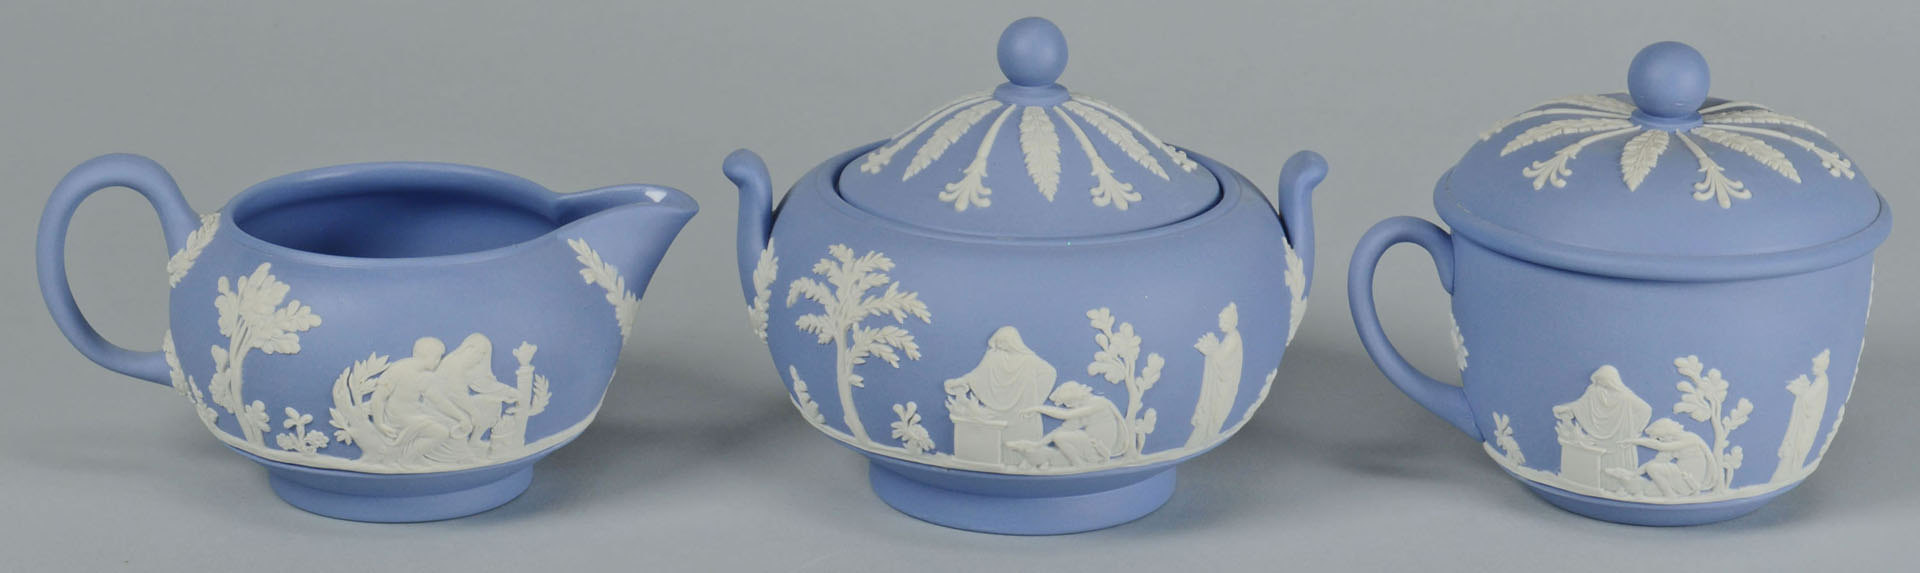 Lot 567: Group of Wedgwood England Jasperware, 44 pcs